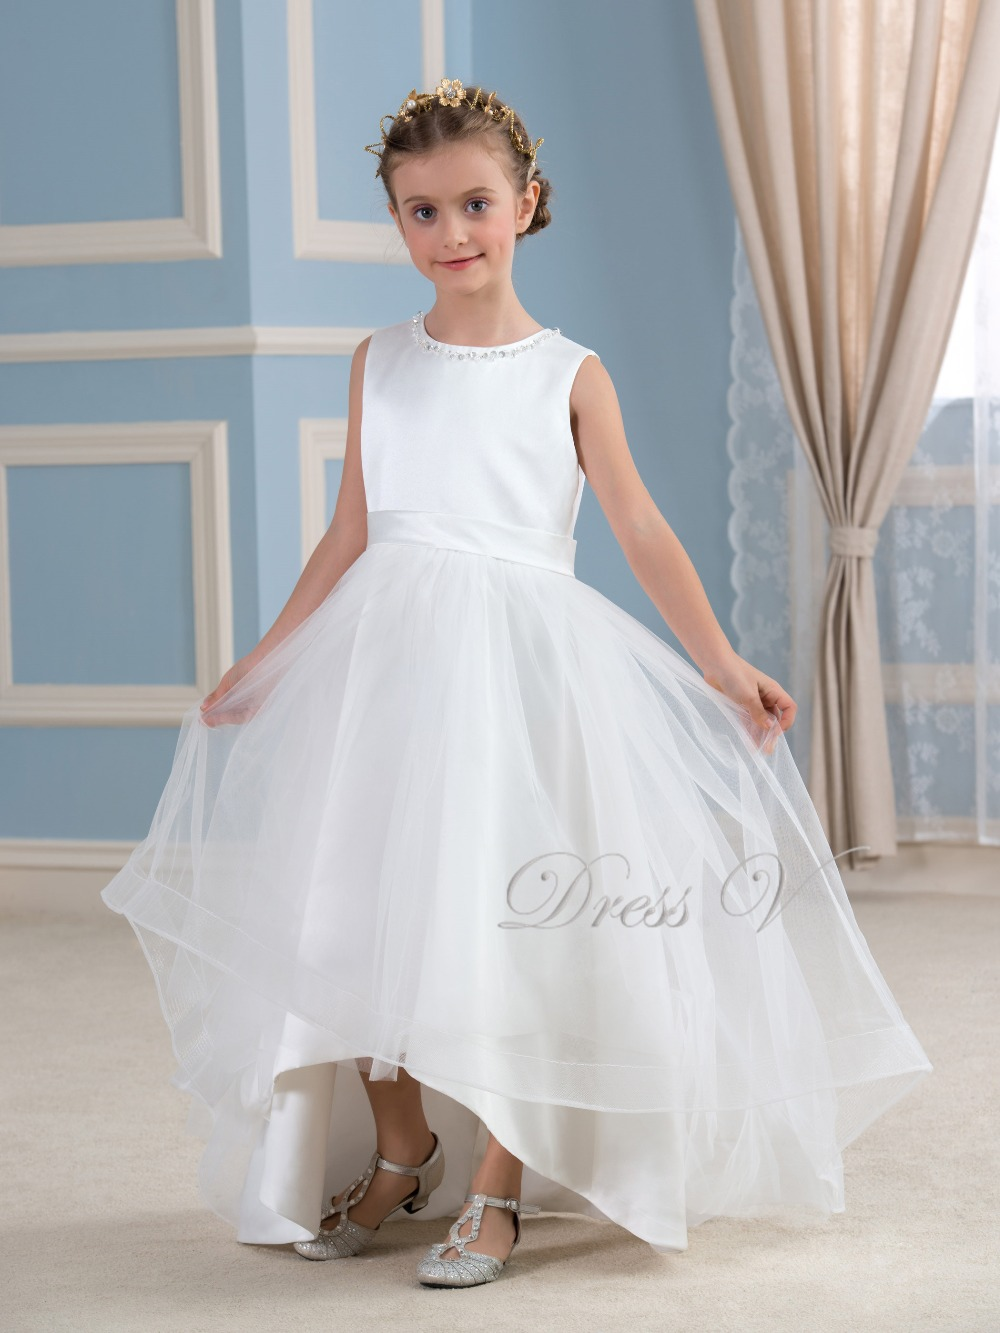 b9062de44c3f3 White Puffy Tulle Flower Girl Dresses High Low Sequins Children First  Communion Dress Girls Pageant Kids Wedding Party Gowns